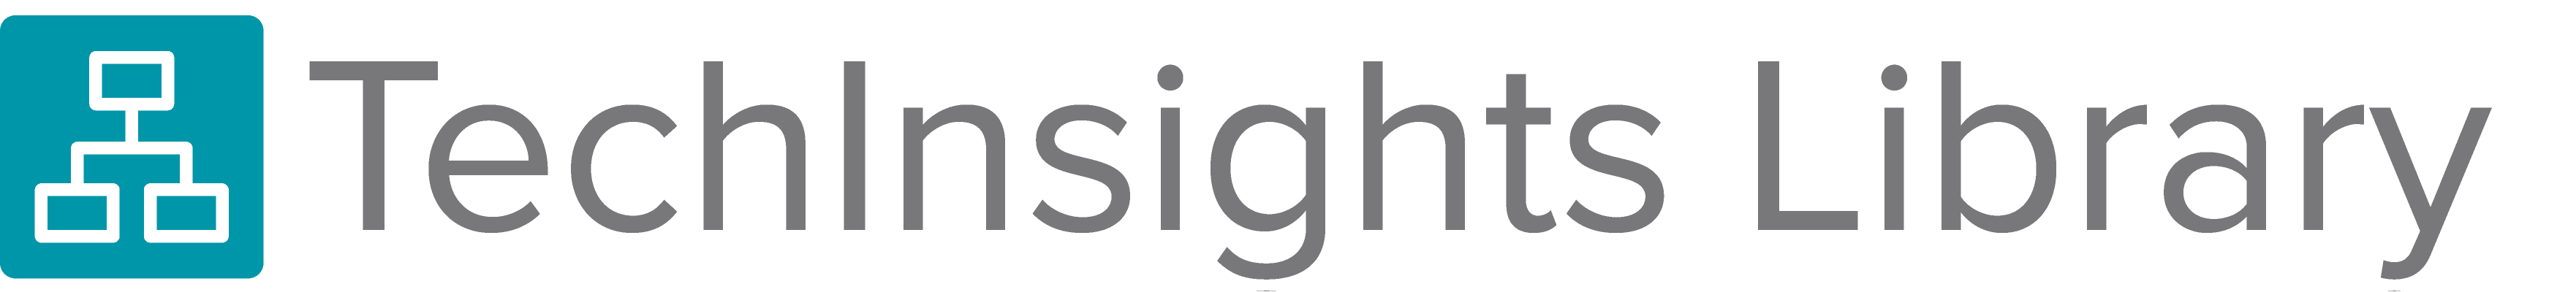 TechInsights Library Subscription